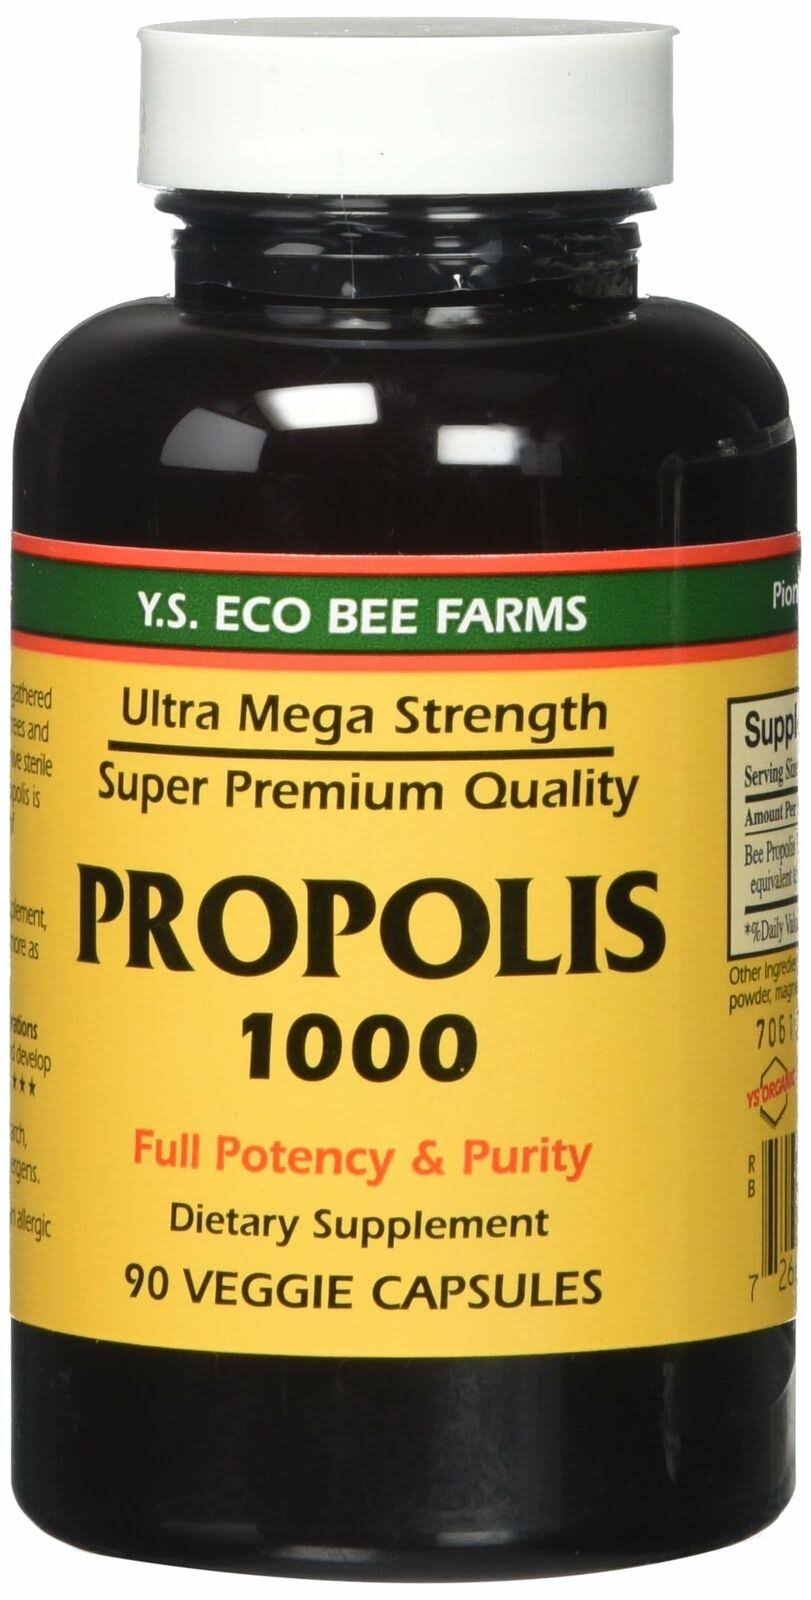 Y.S. Organic Bee Farms Propolis Supplement - 1000mg, 90 Capsules